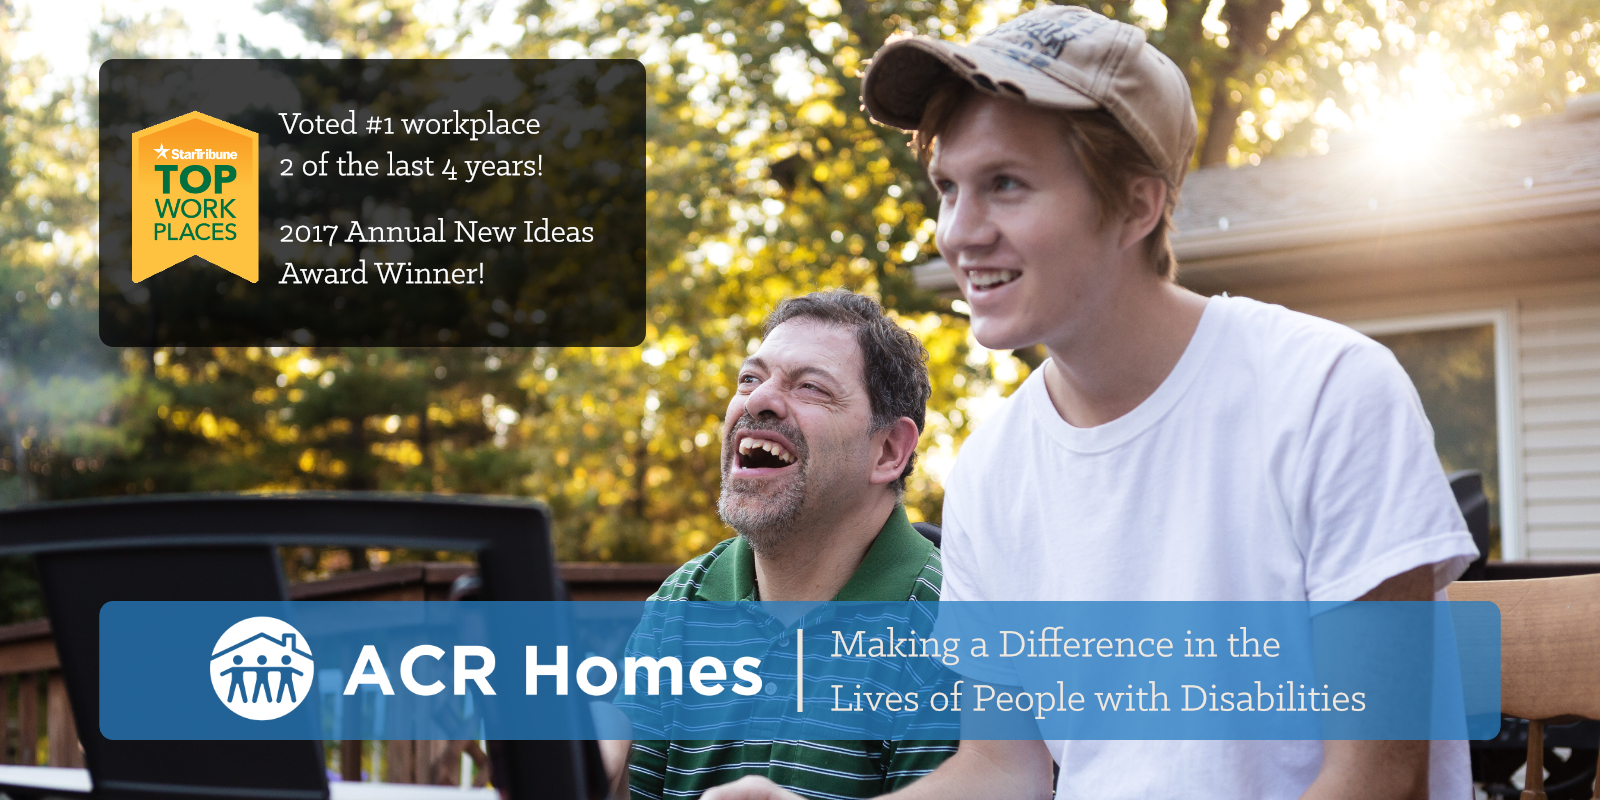 ACR Homes Making a Difference in the Lives of People with Disabilities